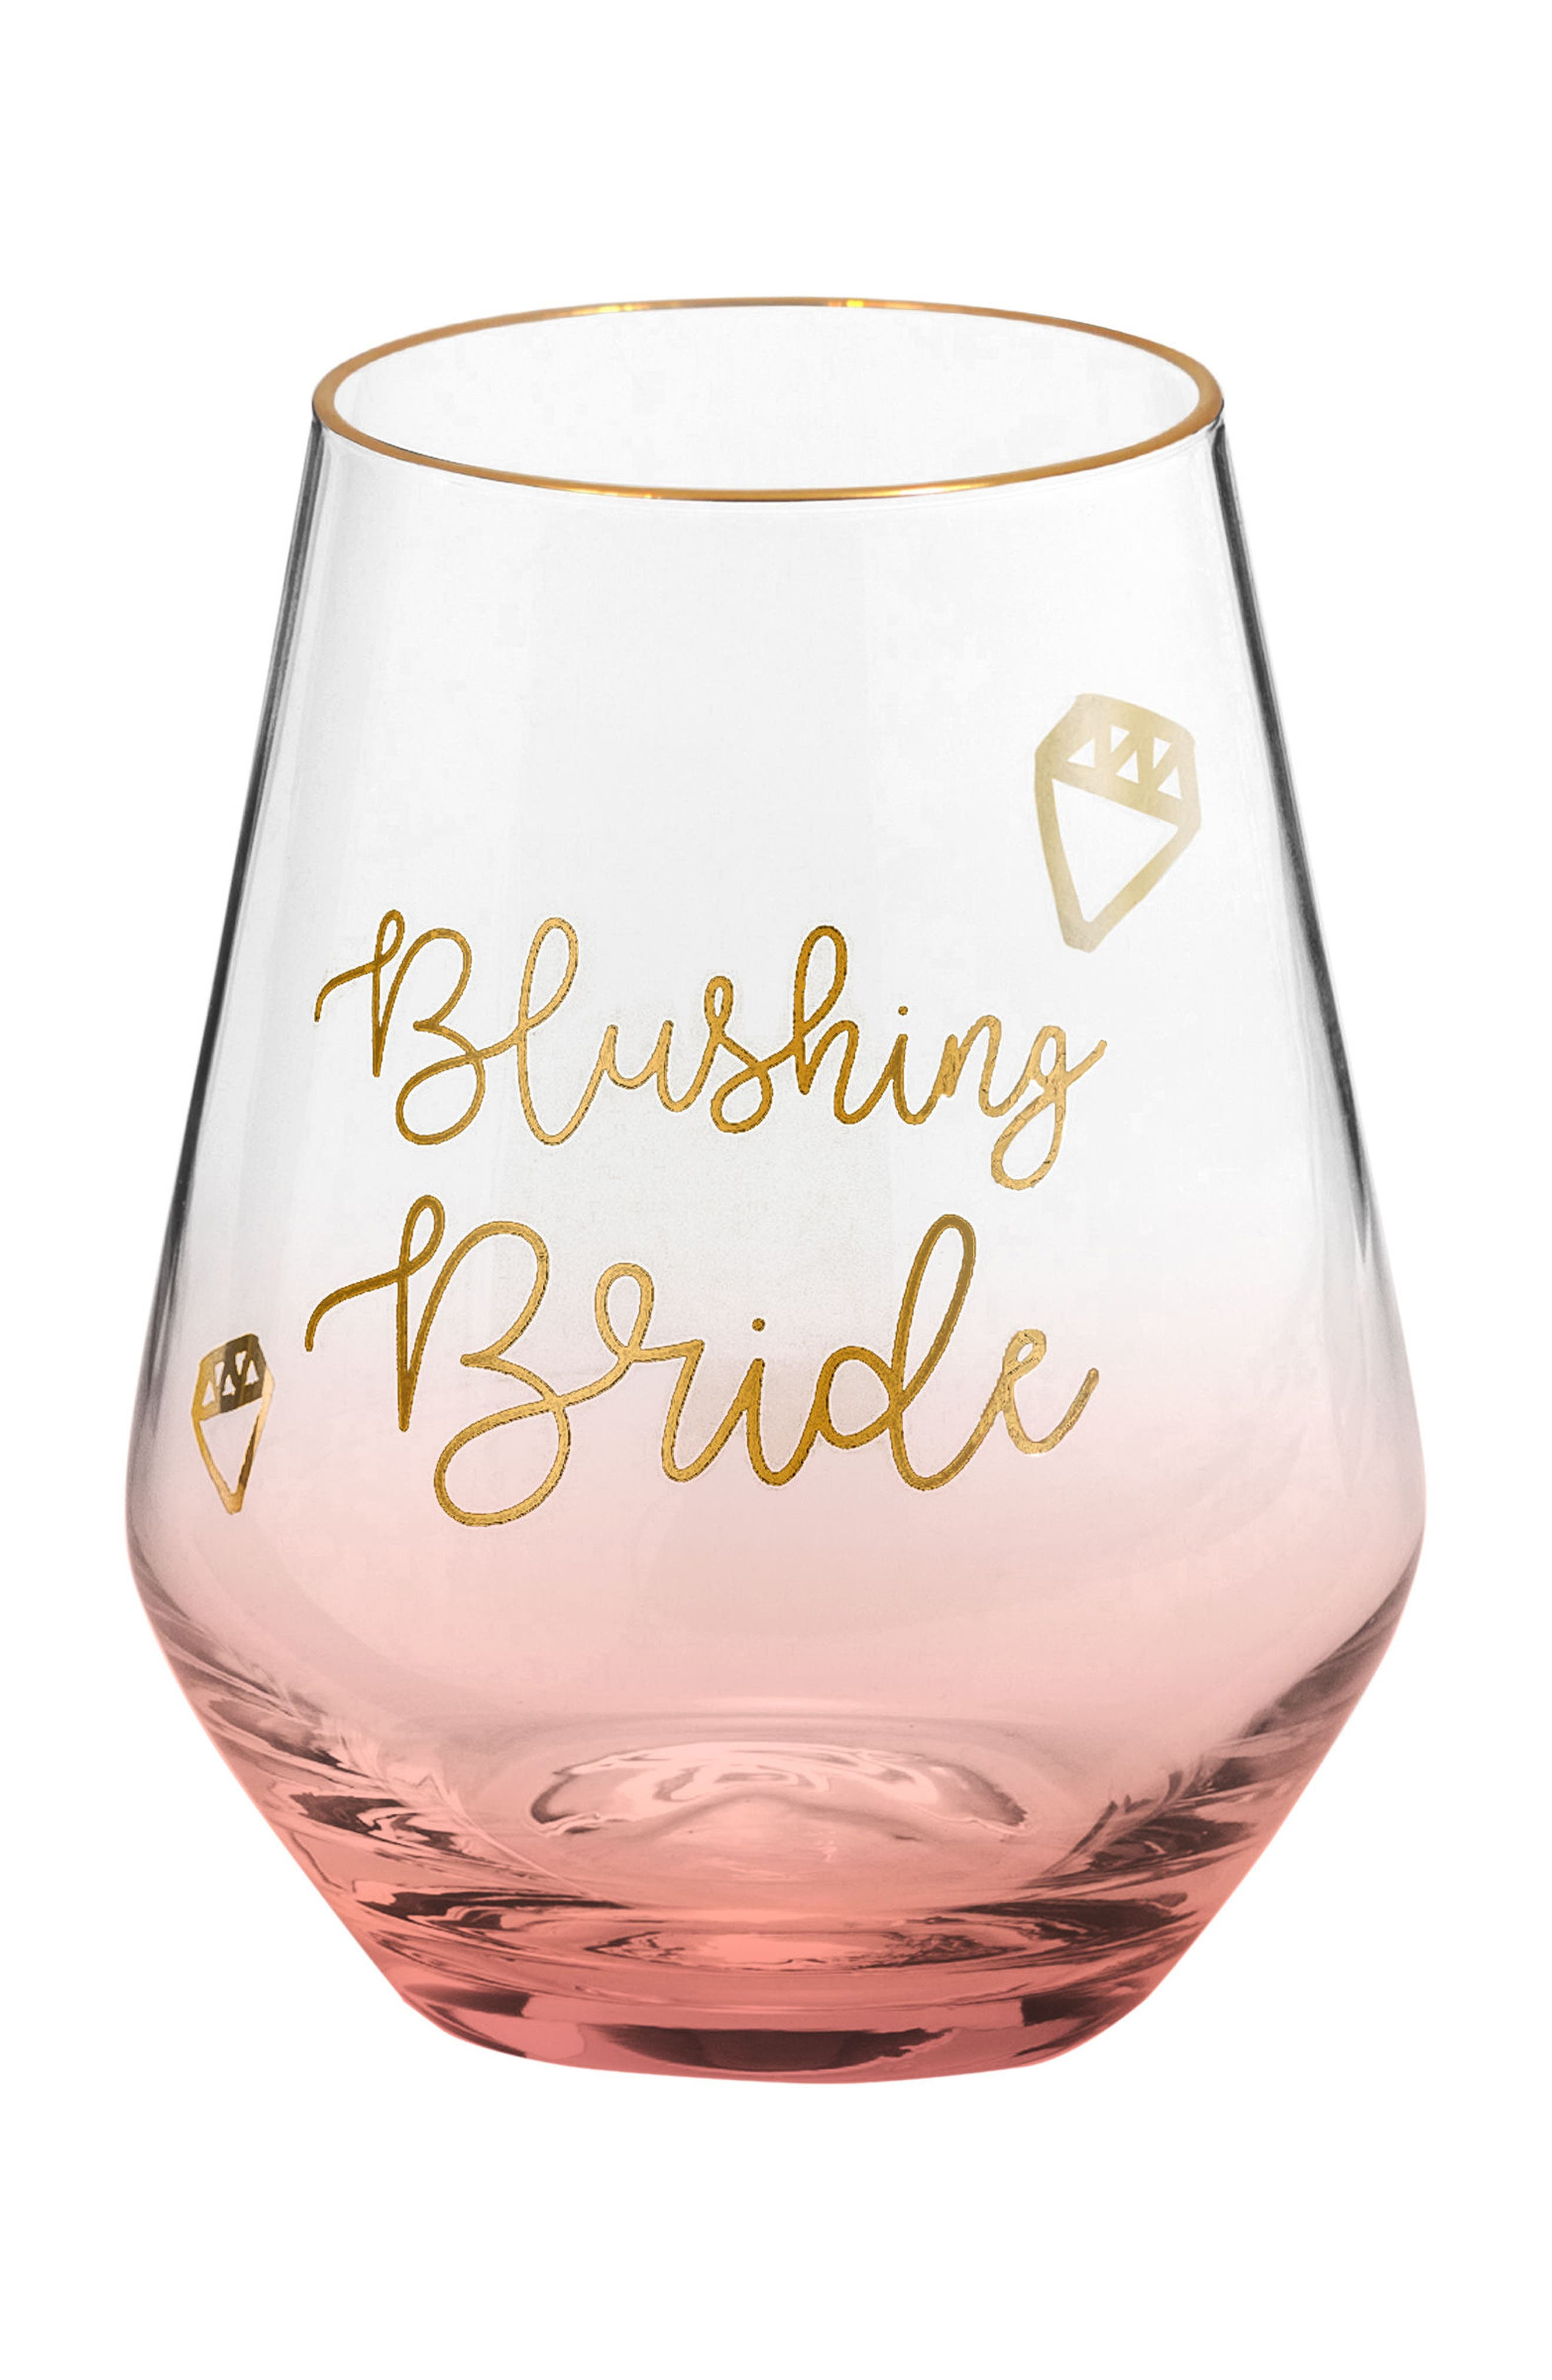 Blushing Bride Stemless Wine Glass,                             Main thumbnail 1, color,                             650